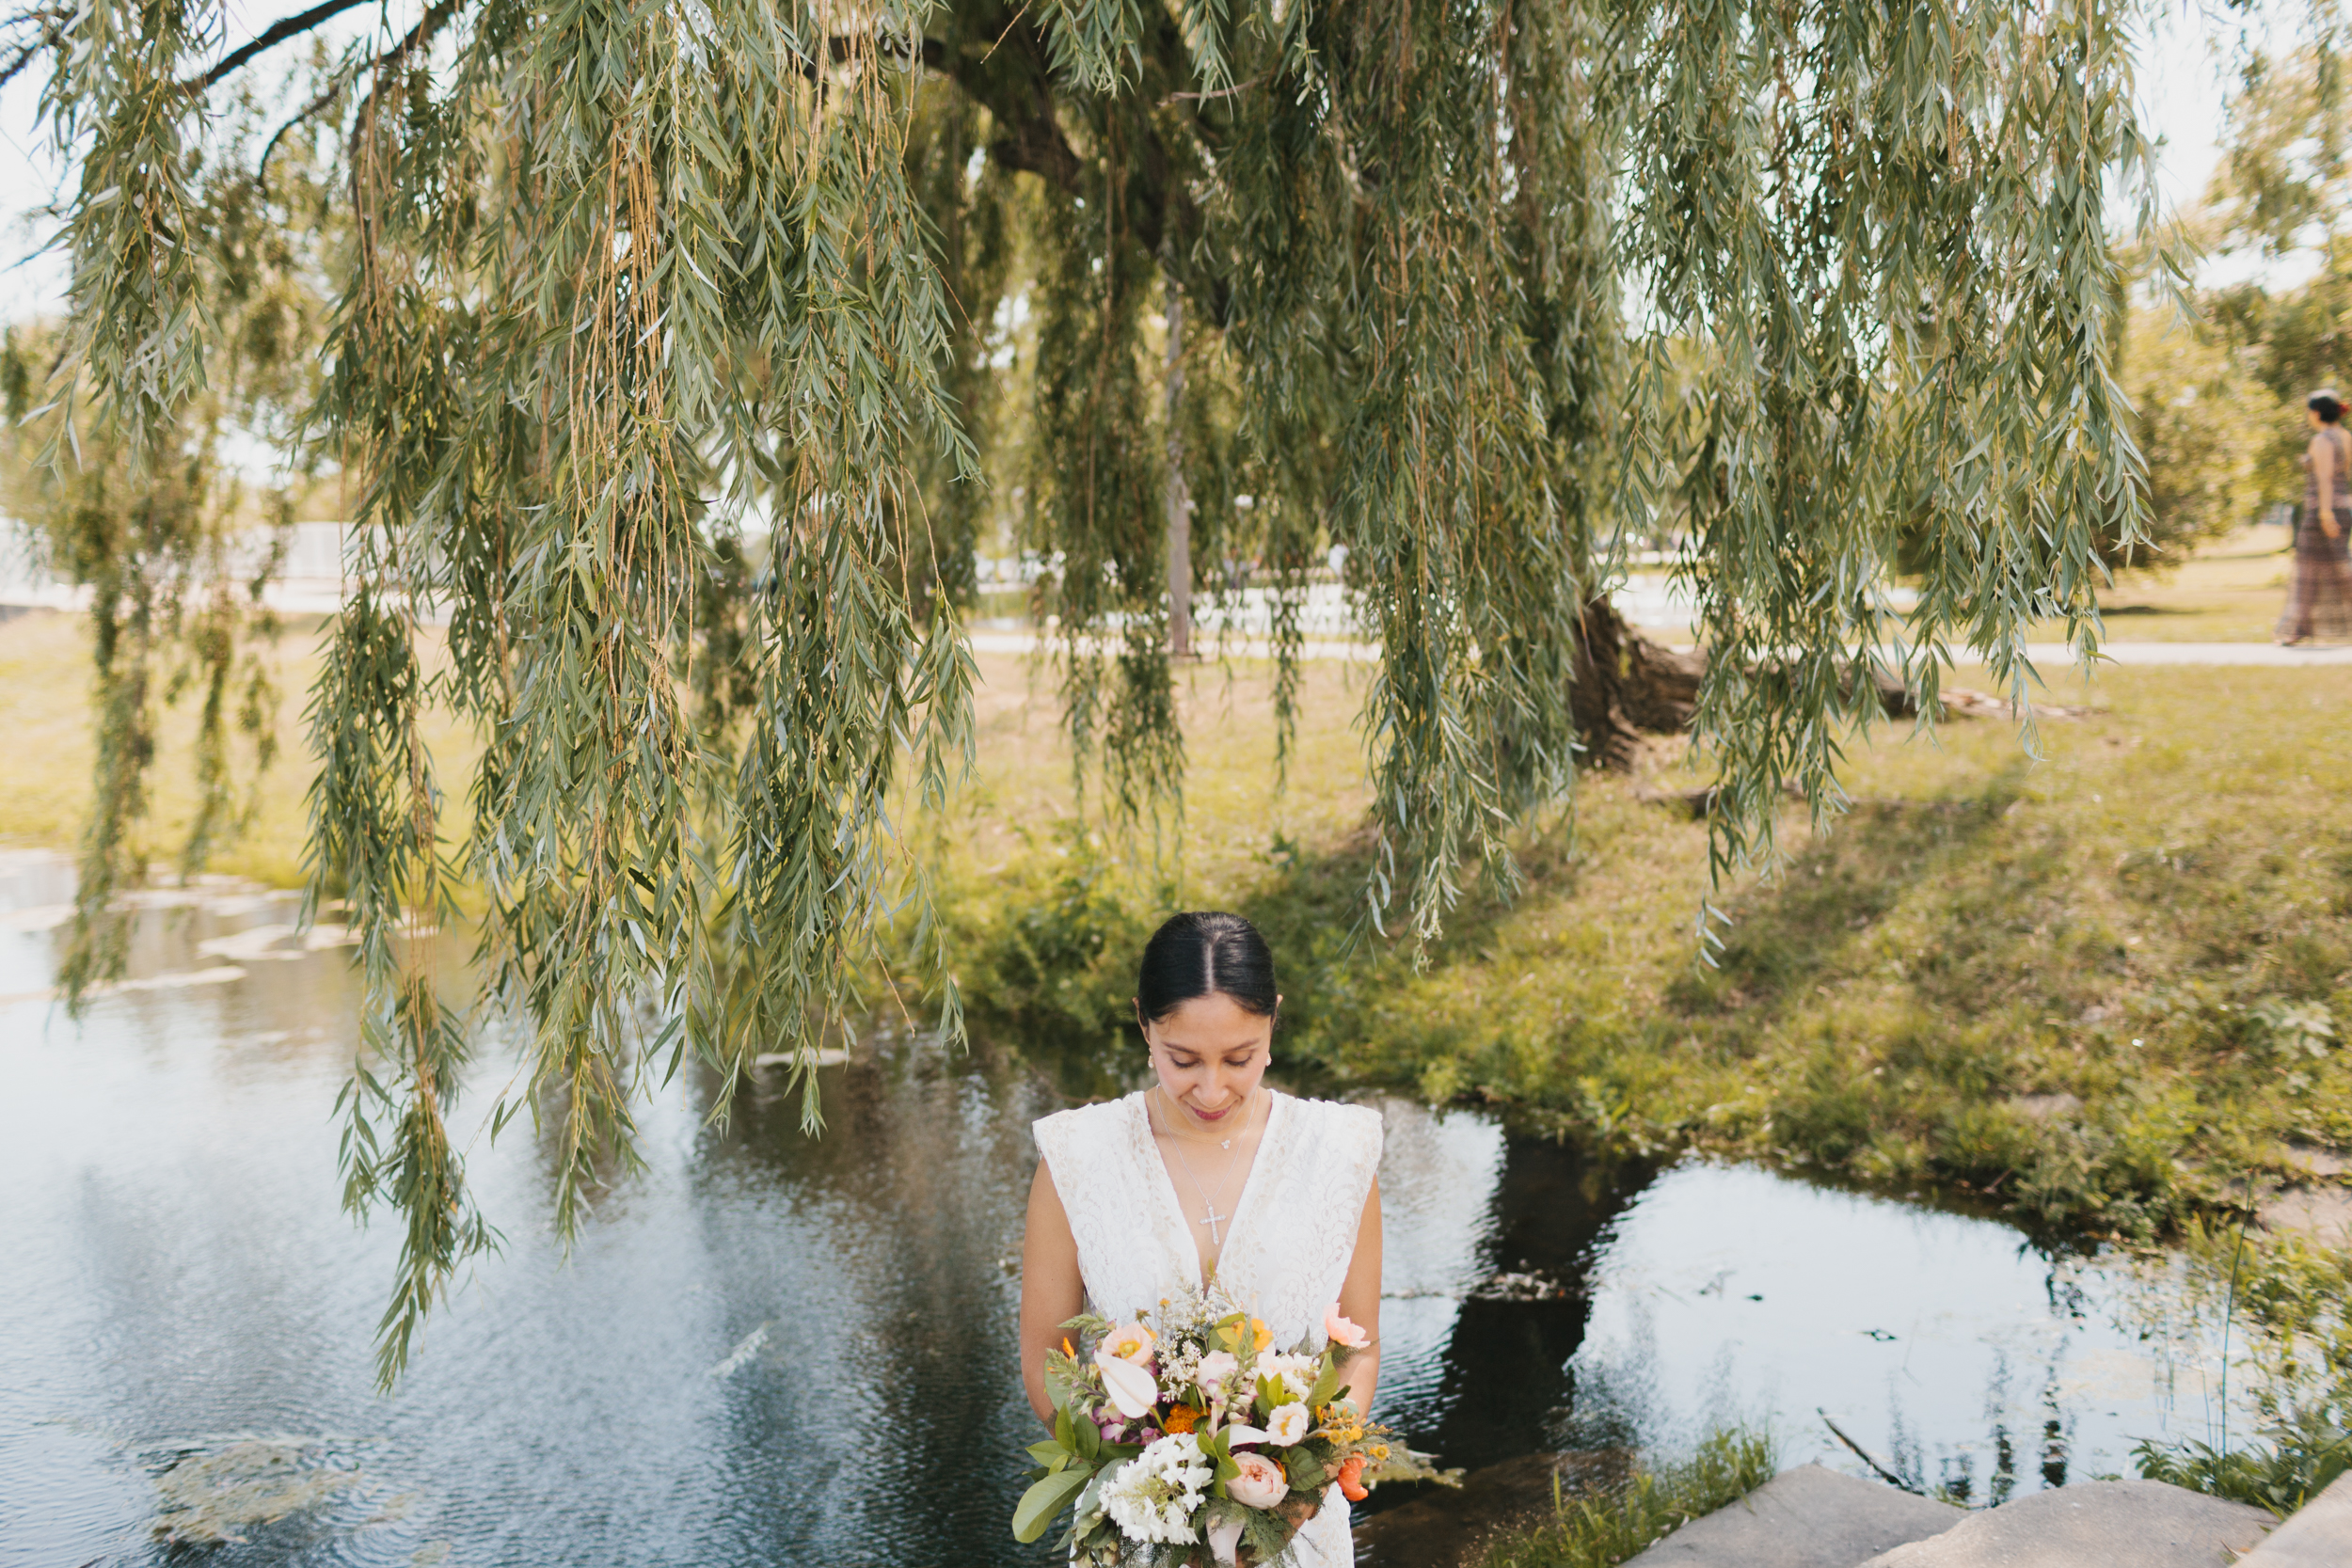 Detroit Lifestyle Wedding Photographer Mae Stier-020.jpg